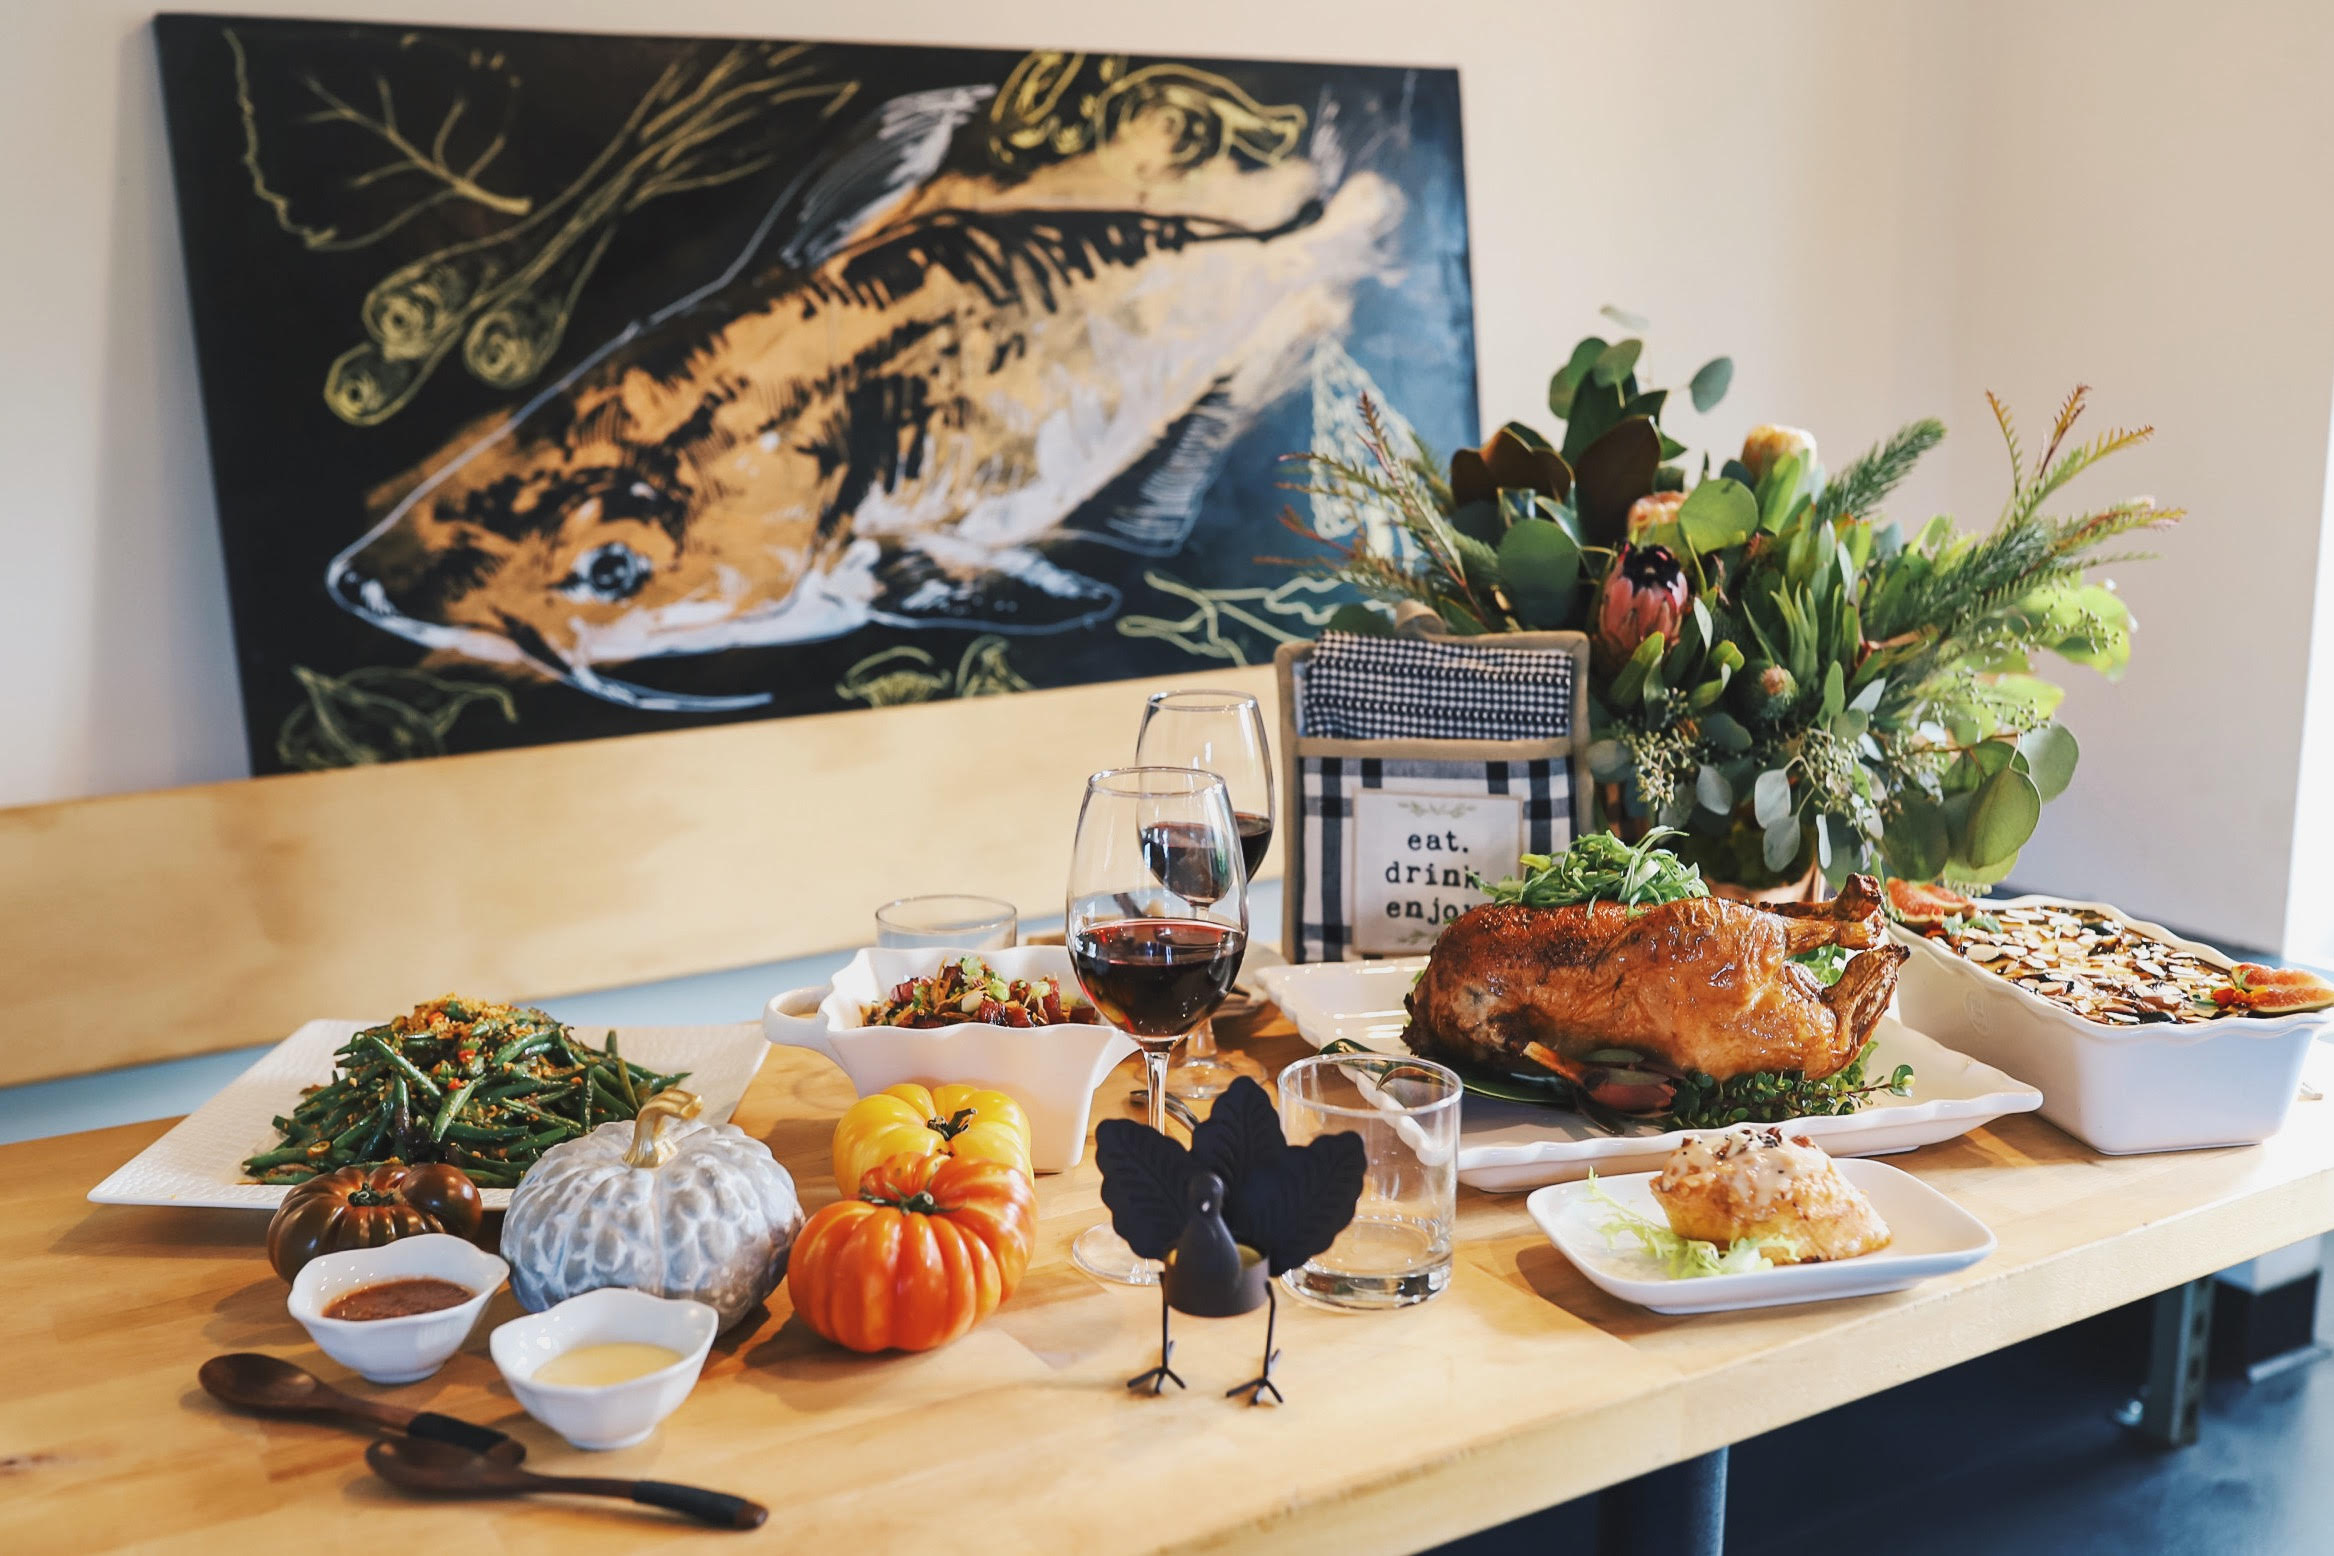 A table covered with a roasted duck, gourds, sauces in tureens, a turkey figurine, and two glasses of red wine, with a painting of a catfish in the background